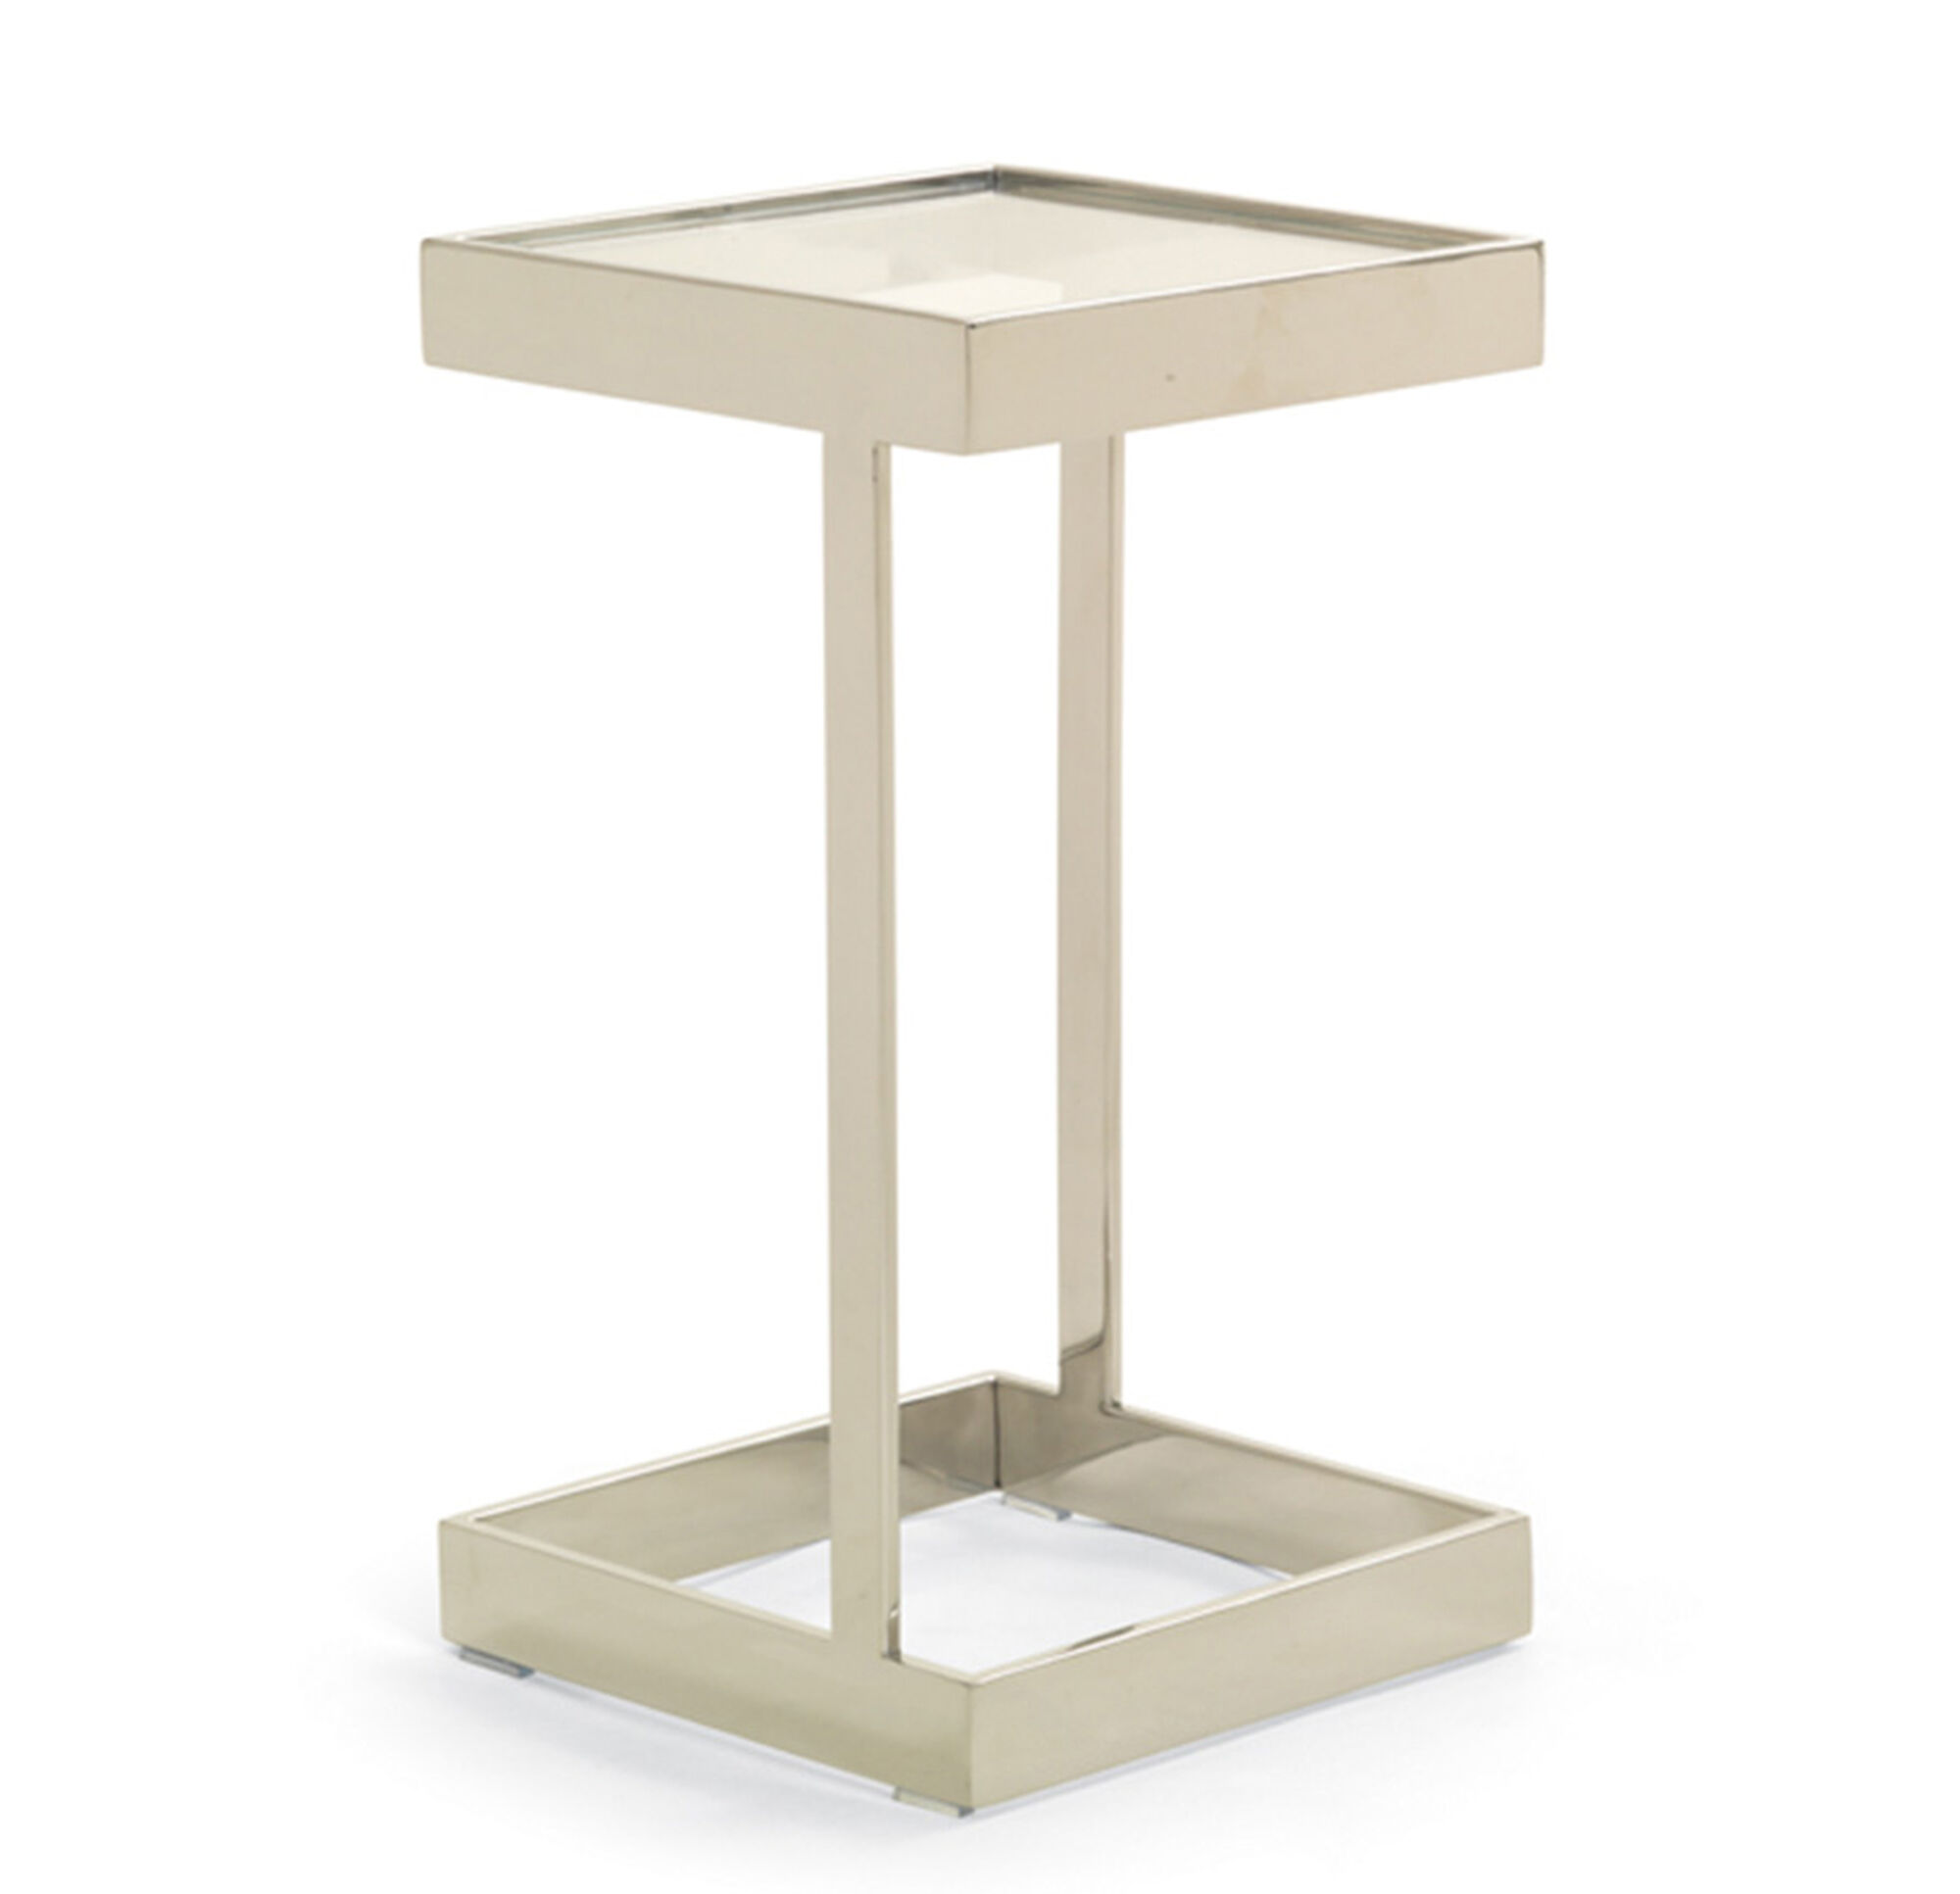 Addie pull up table   pewter